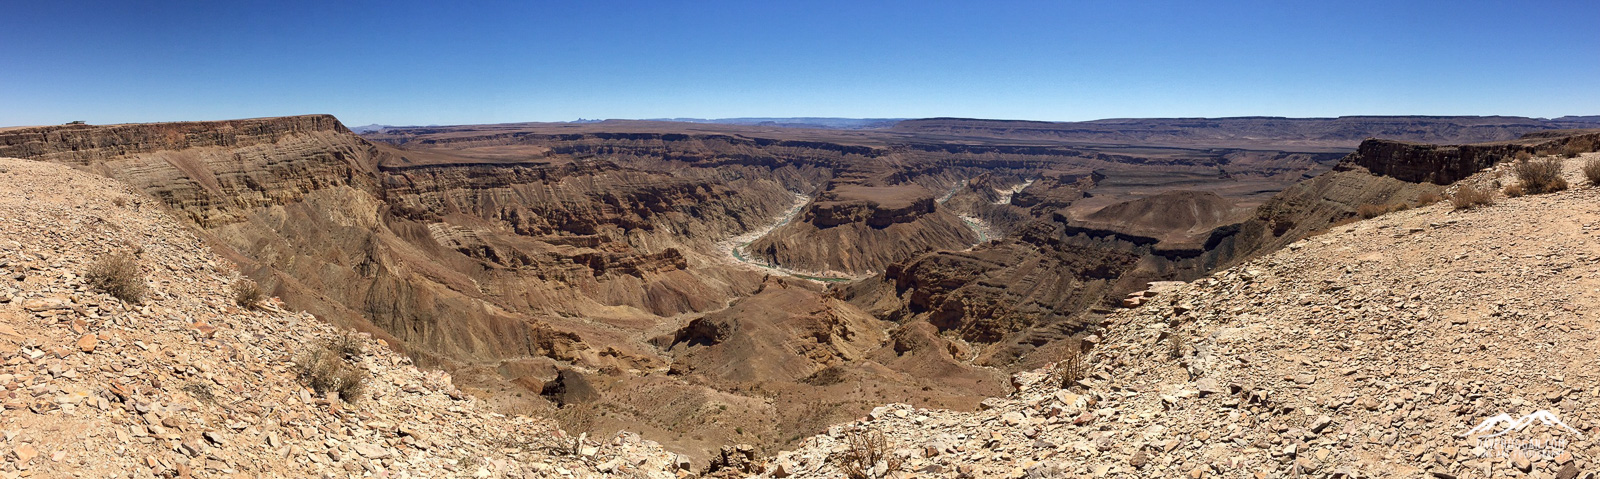 As impressive as Fish River Canyon is, it will be the light that matters…